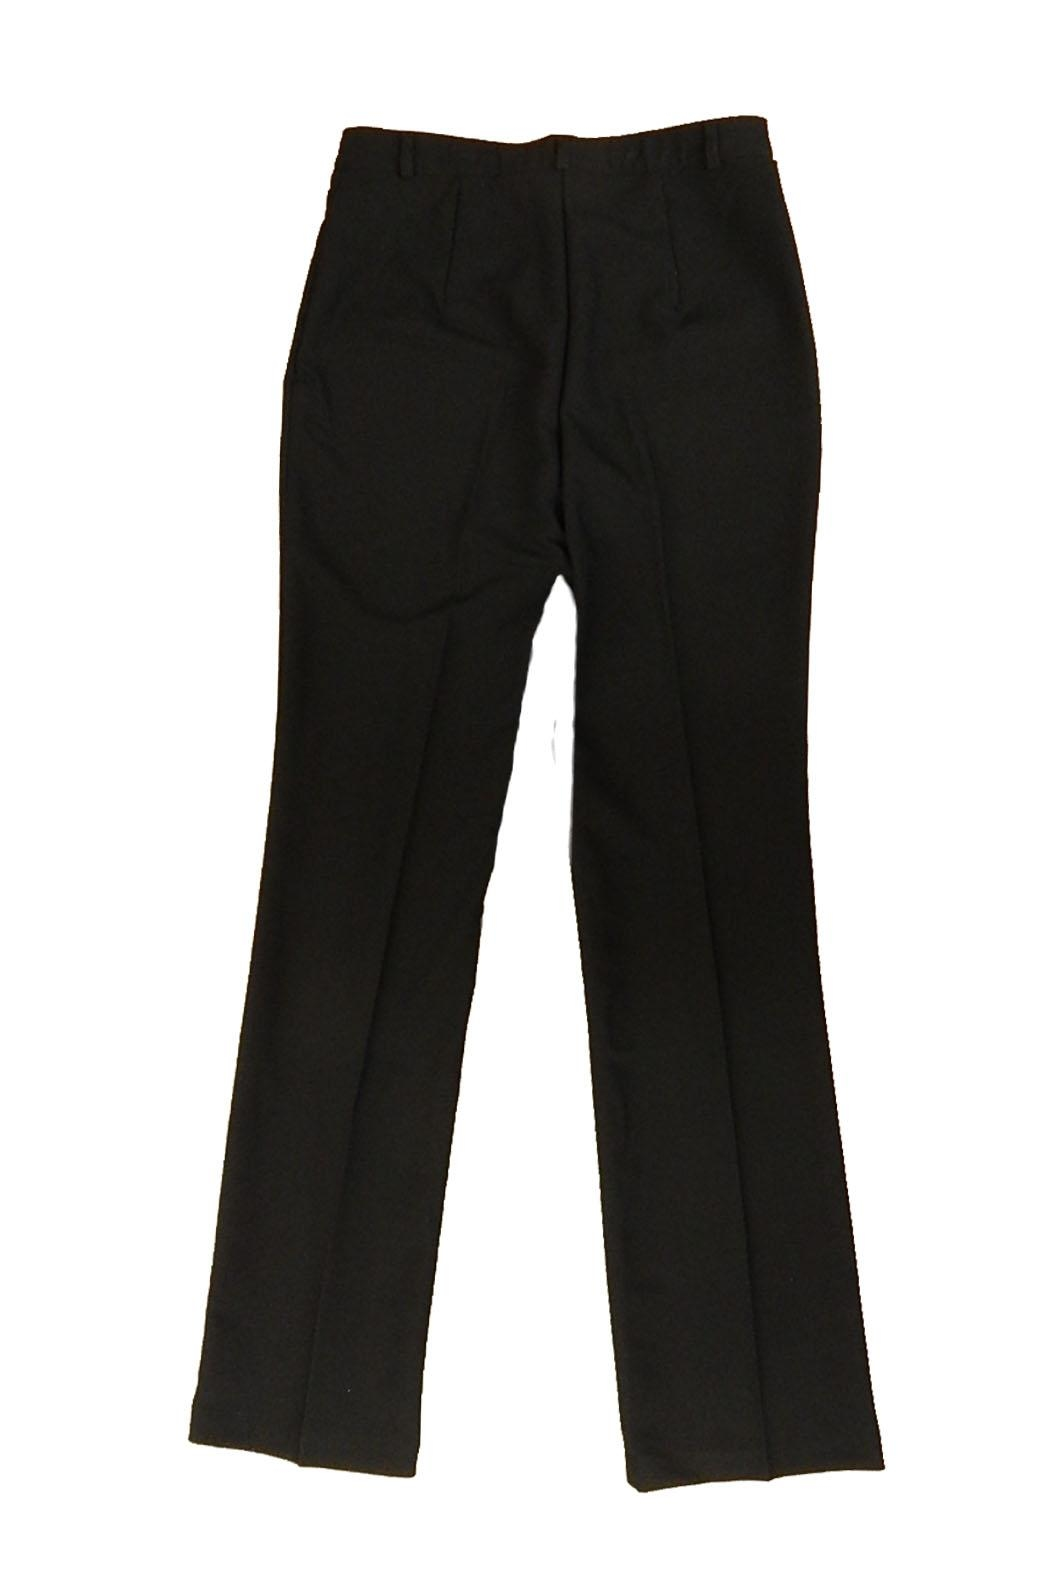 Tribal Classic Black Pants - Side Cropped Image